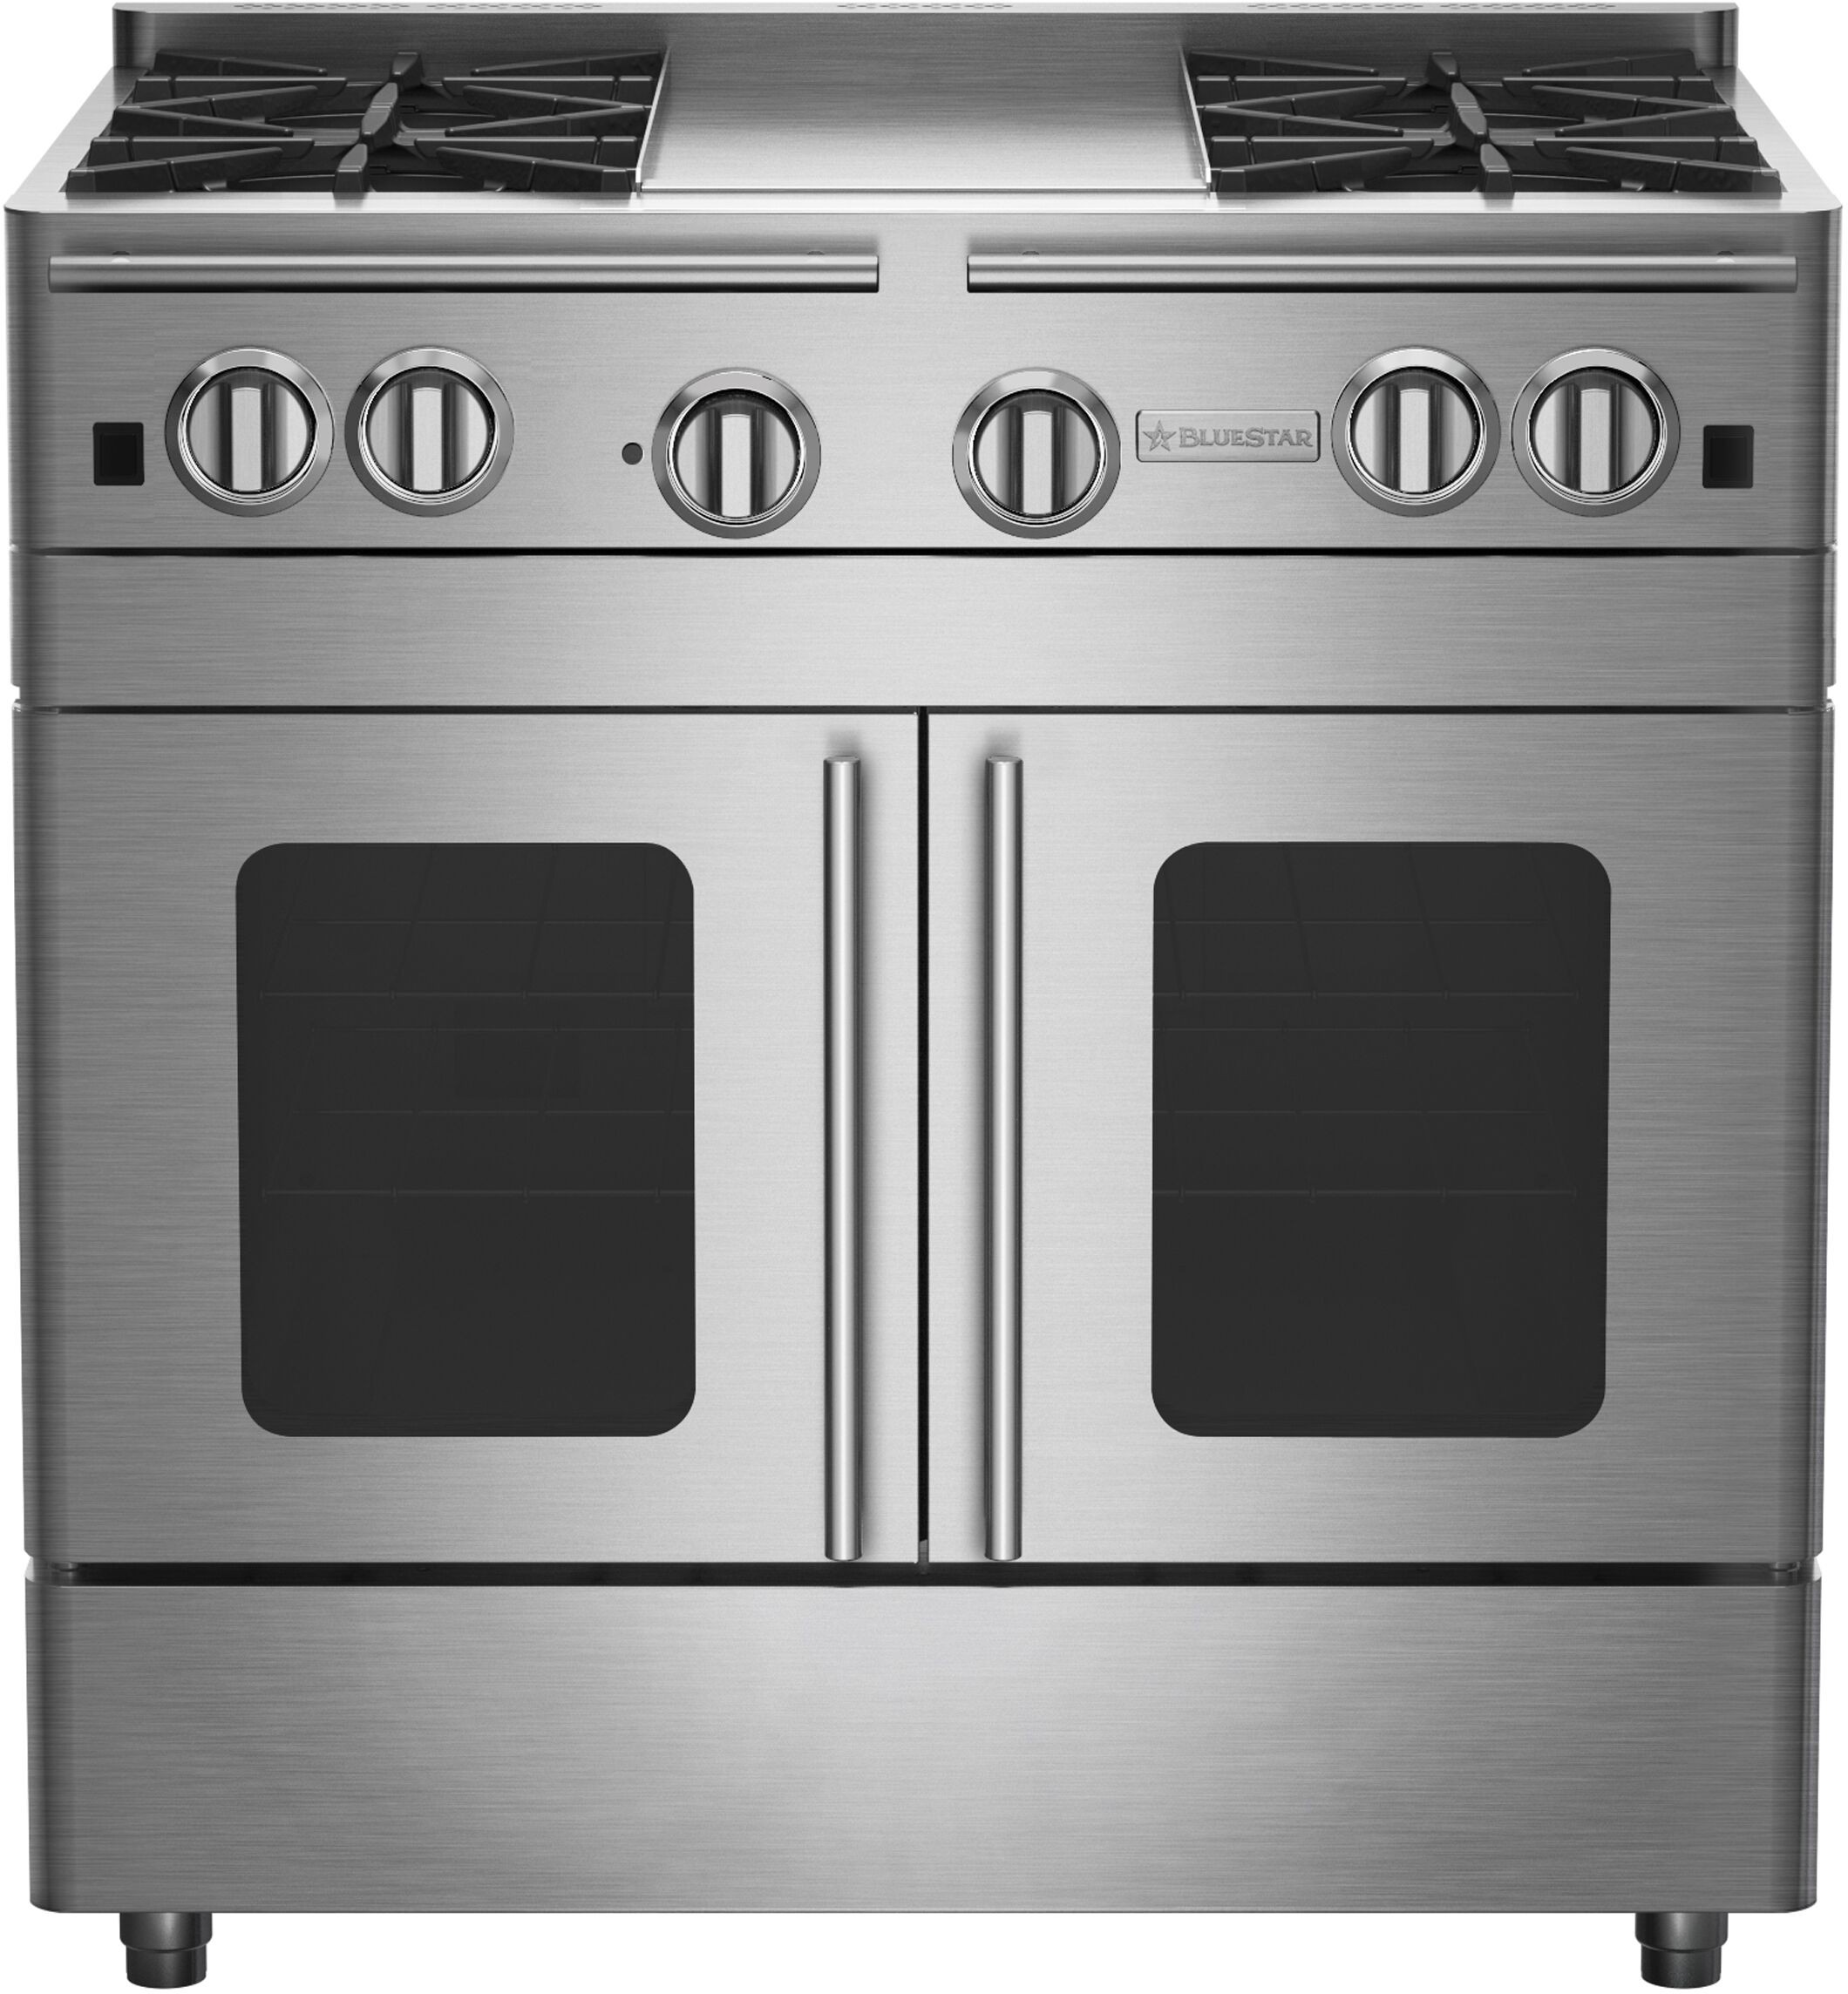 36 Inch Gas Range With 4 Open Burners